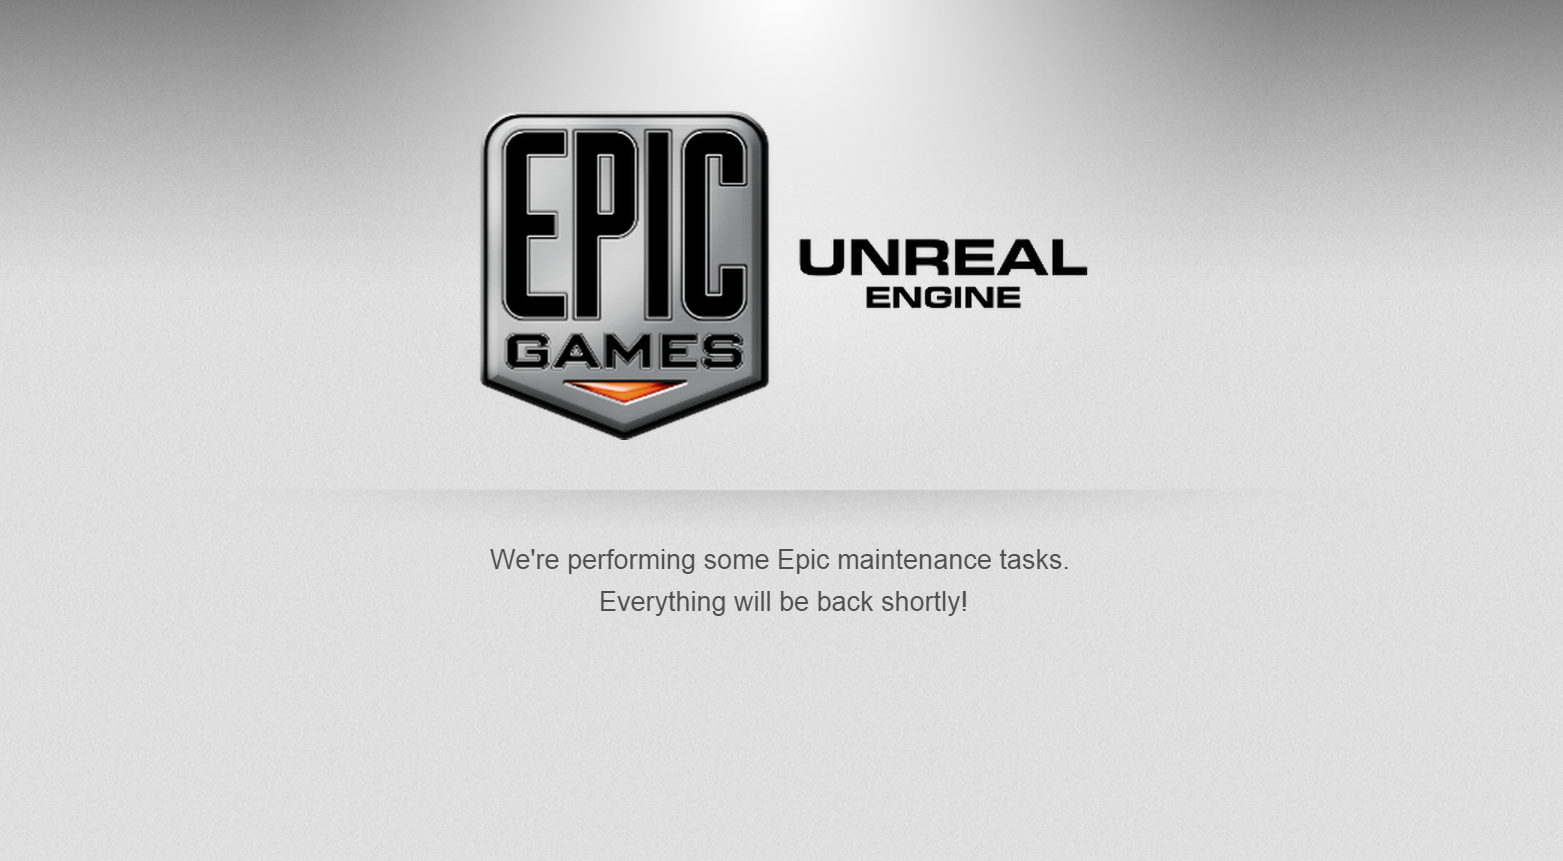 Epic Games Forums Hacked, Change Your Passwords